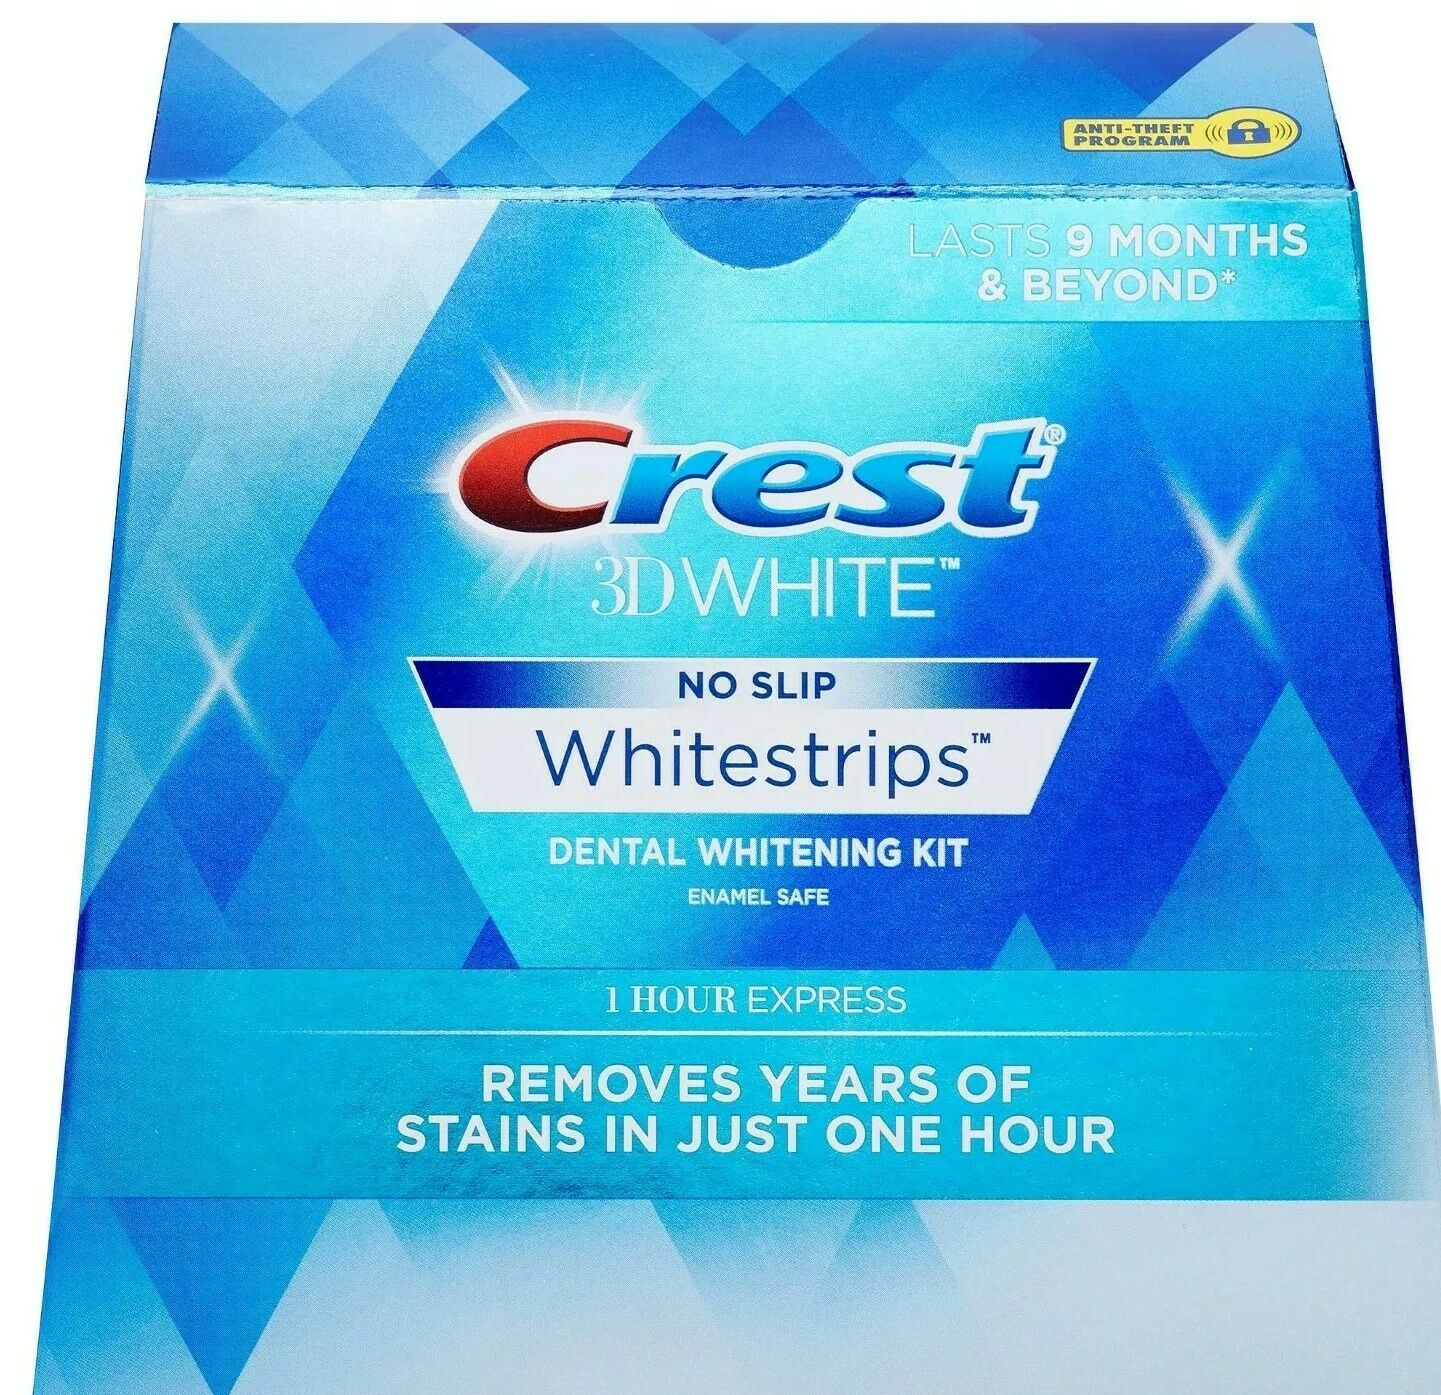 How to use whitestrips